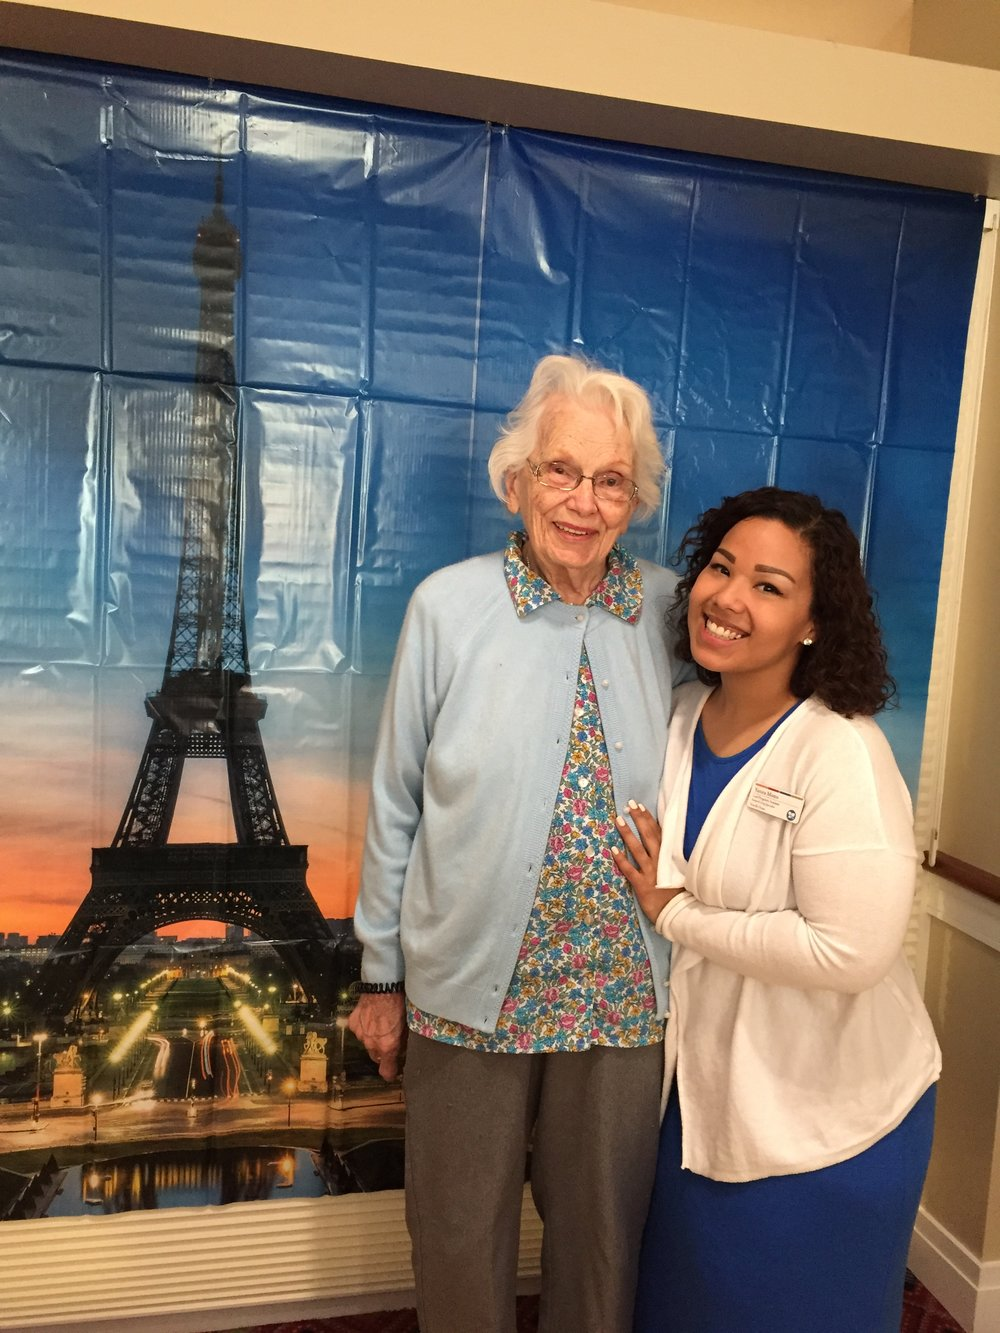 Youville resident Alice Raulinaitis, pictured with Lead Programs Assistant Yanira Motto, drafted the initial proposal for what would become the Citywide Senior Center in Cambridge.